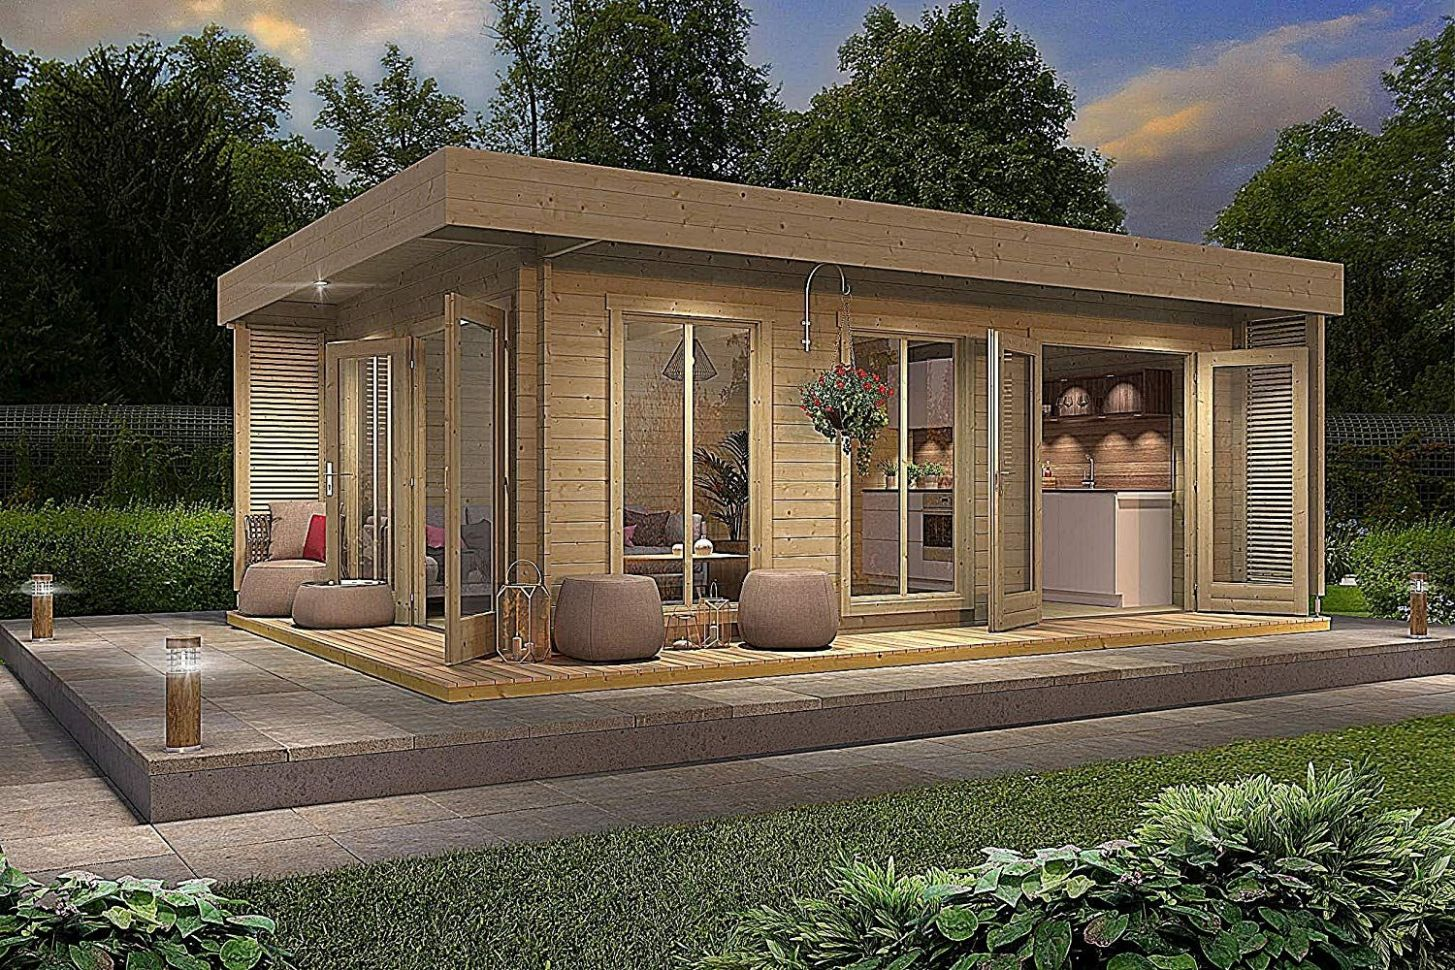 Amazon Is Selling an Allwood Tiny 'Resort-Styled' Cabin Home Kit